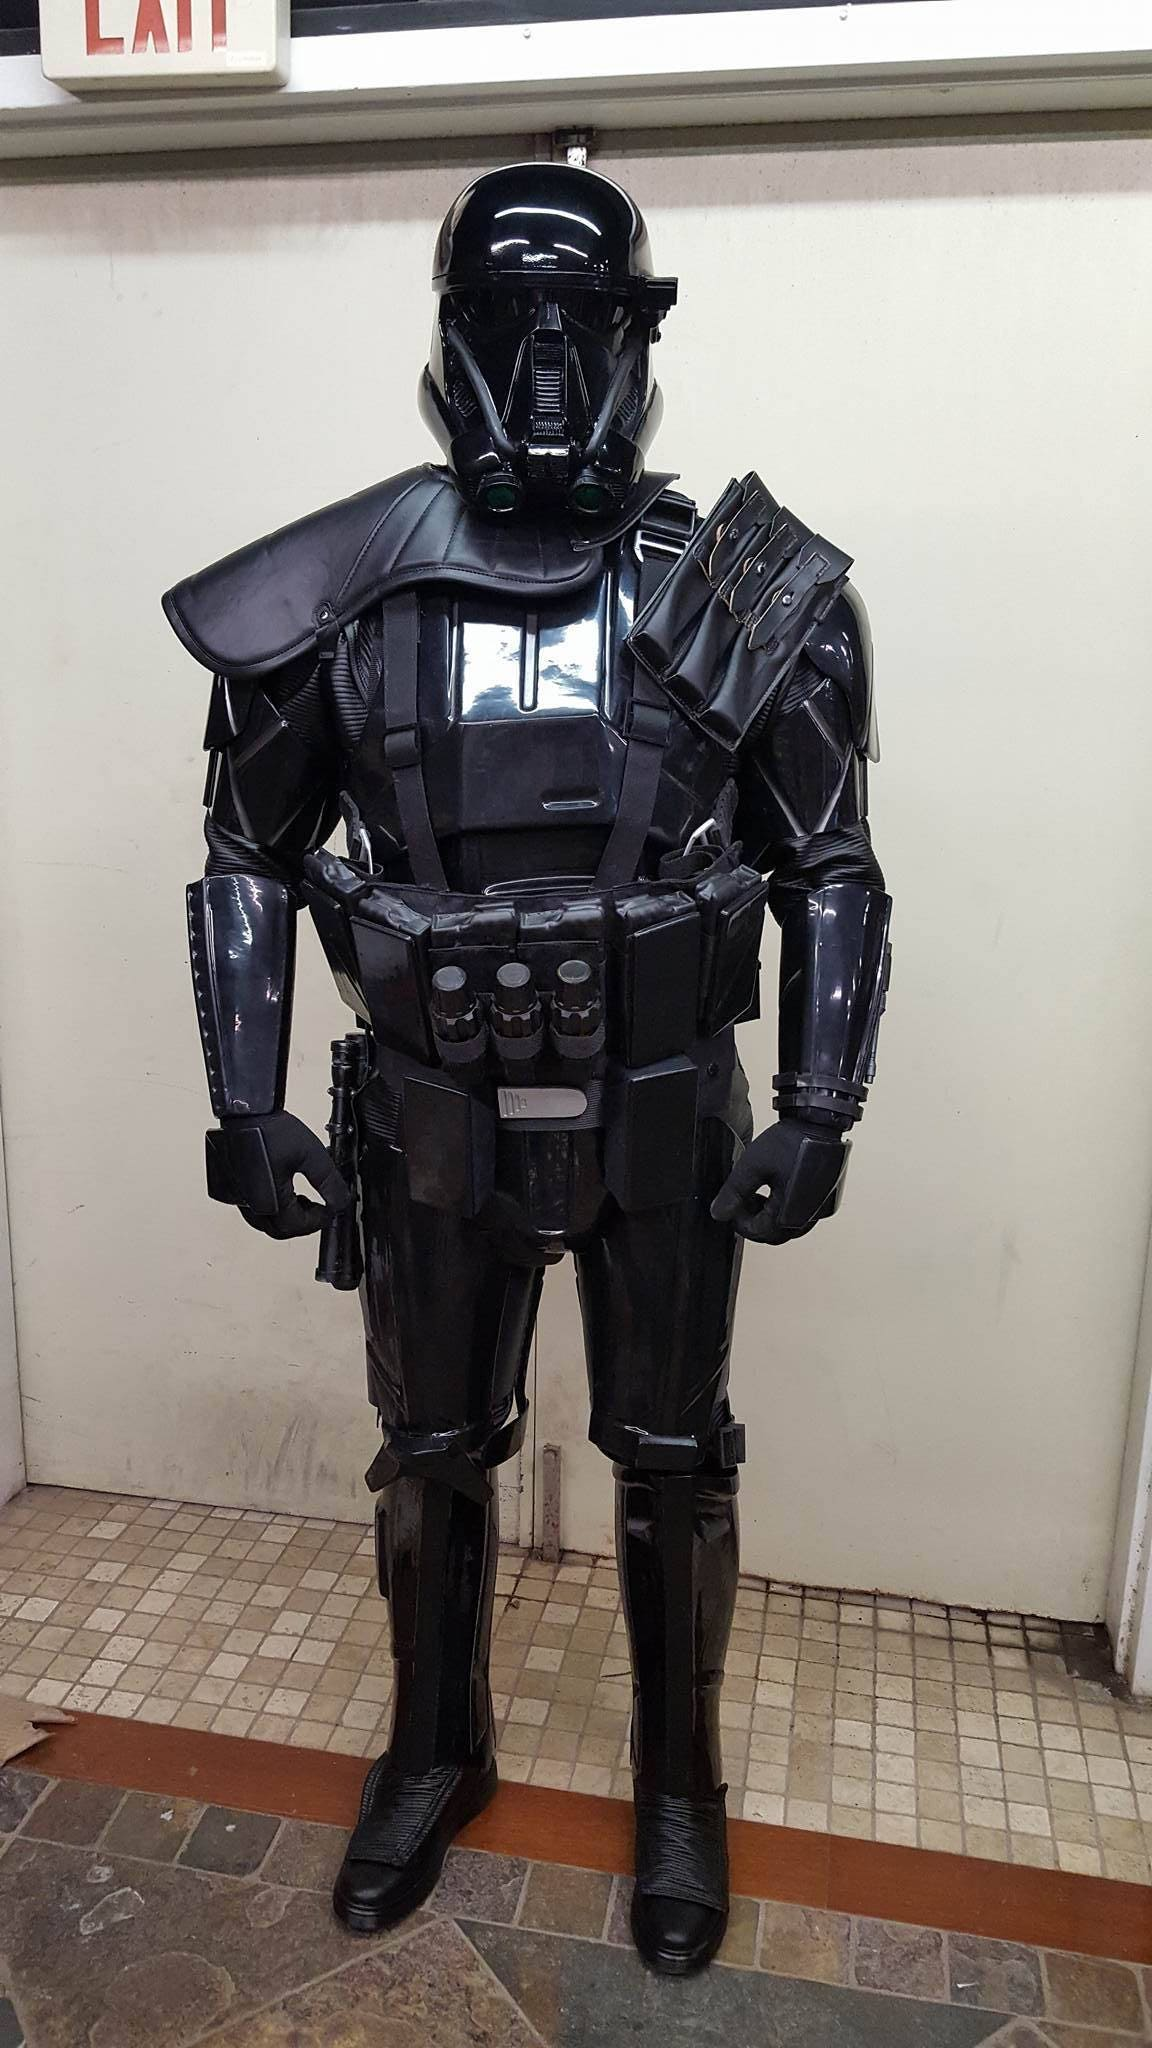 rogue one death trooper full costume armor 501st. Black Bedroom Furniture Sets. Home Design Ideas